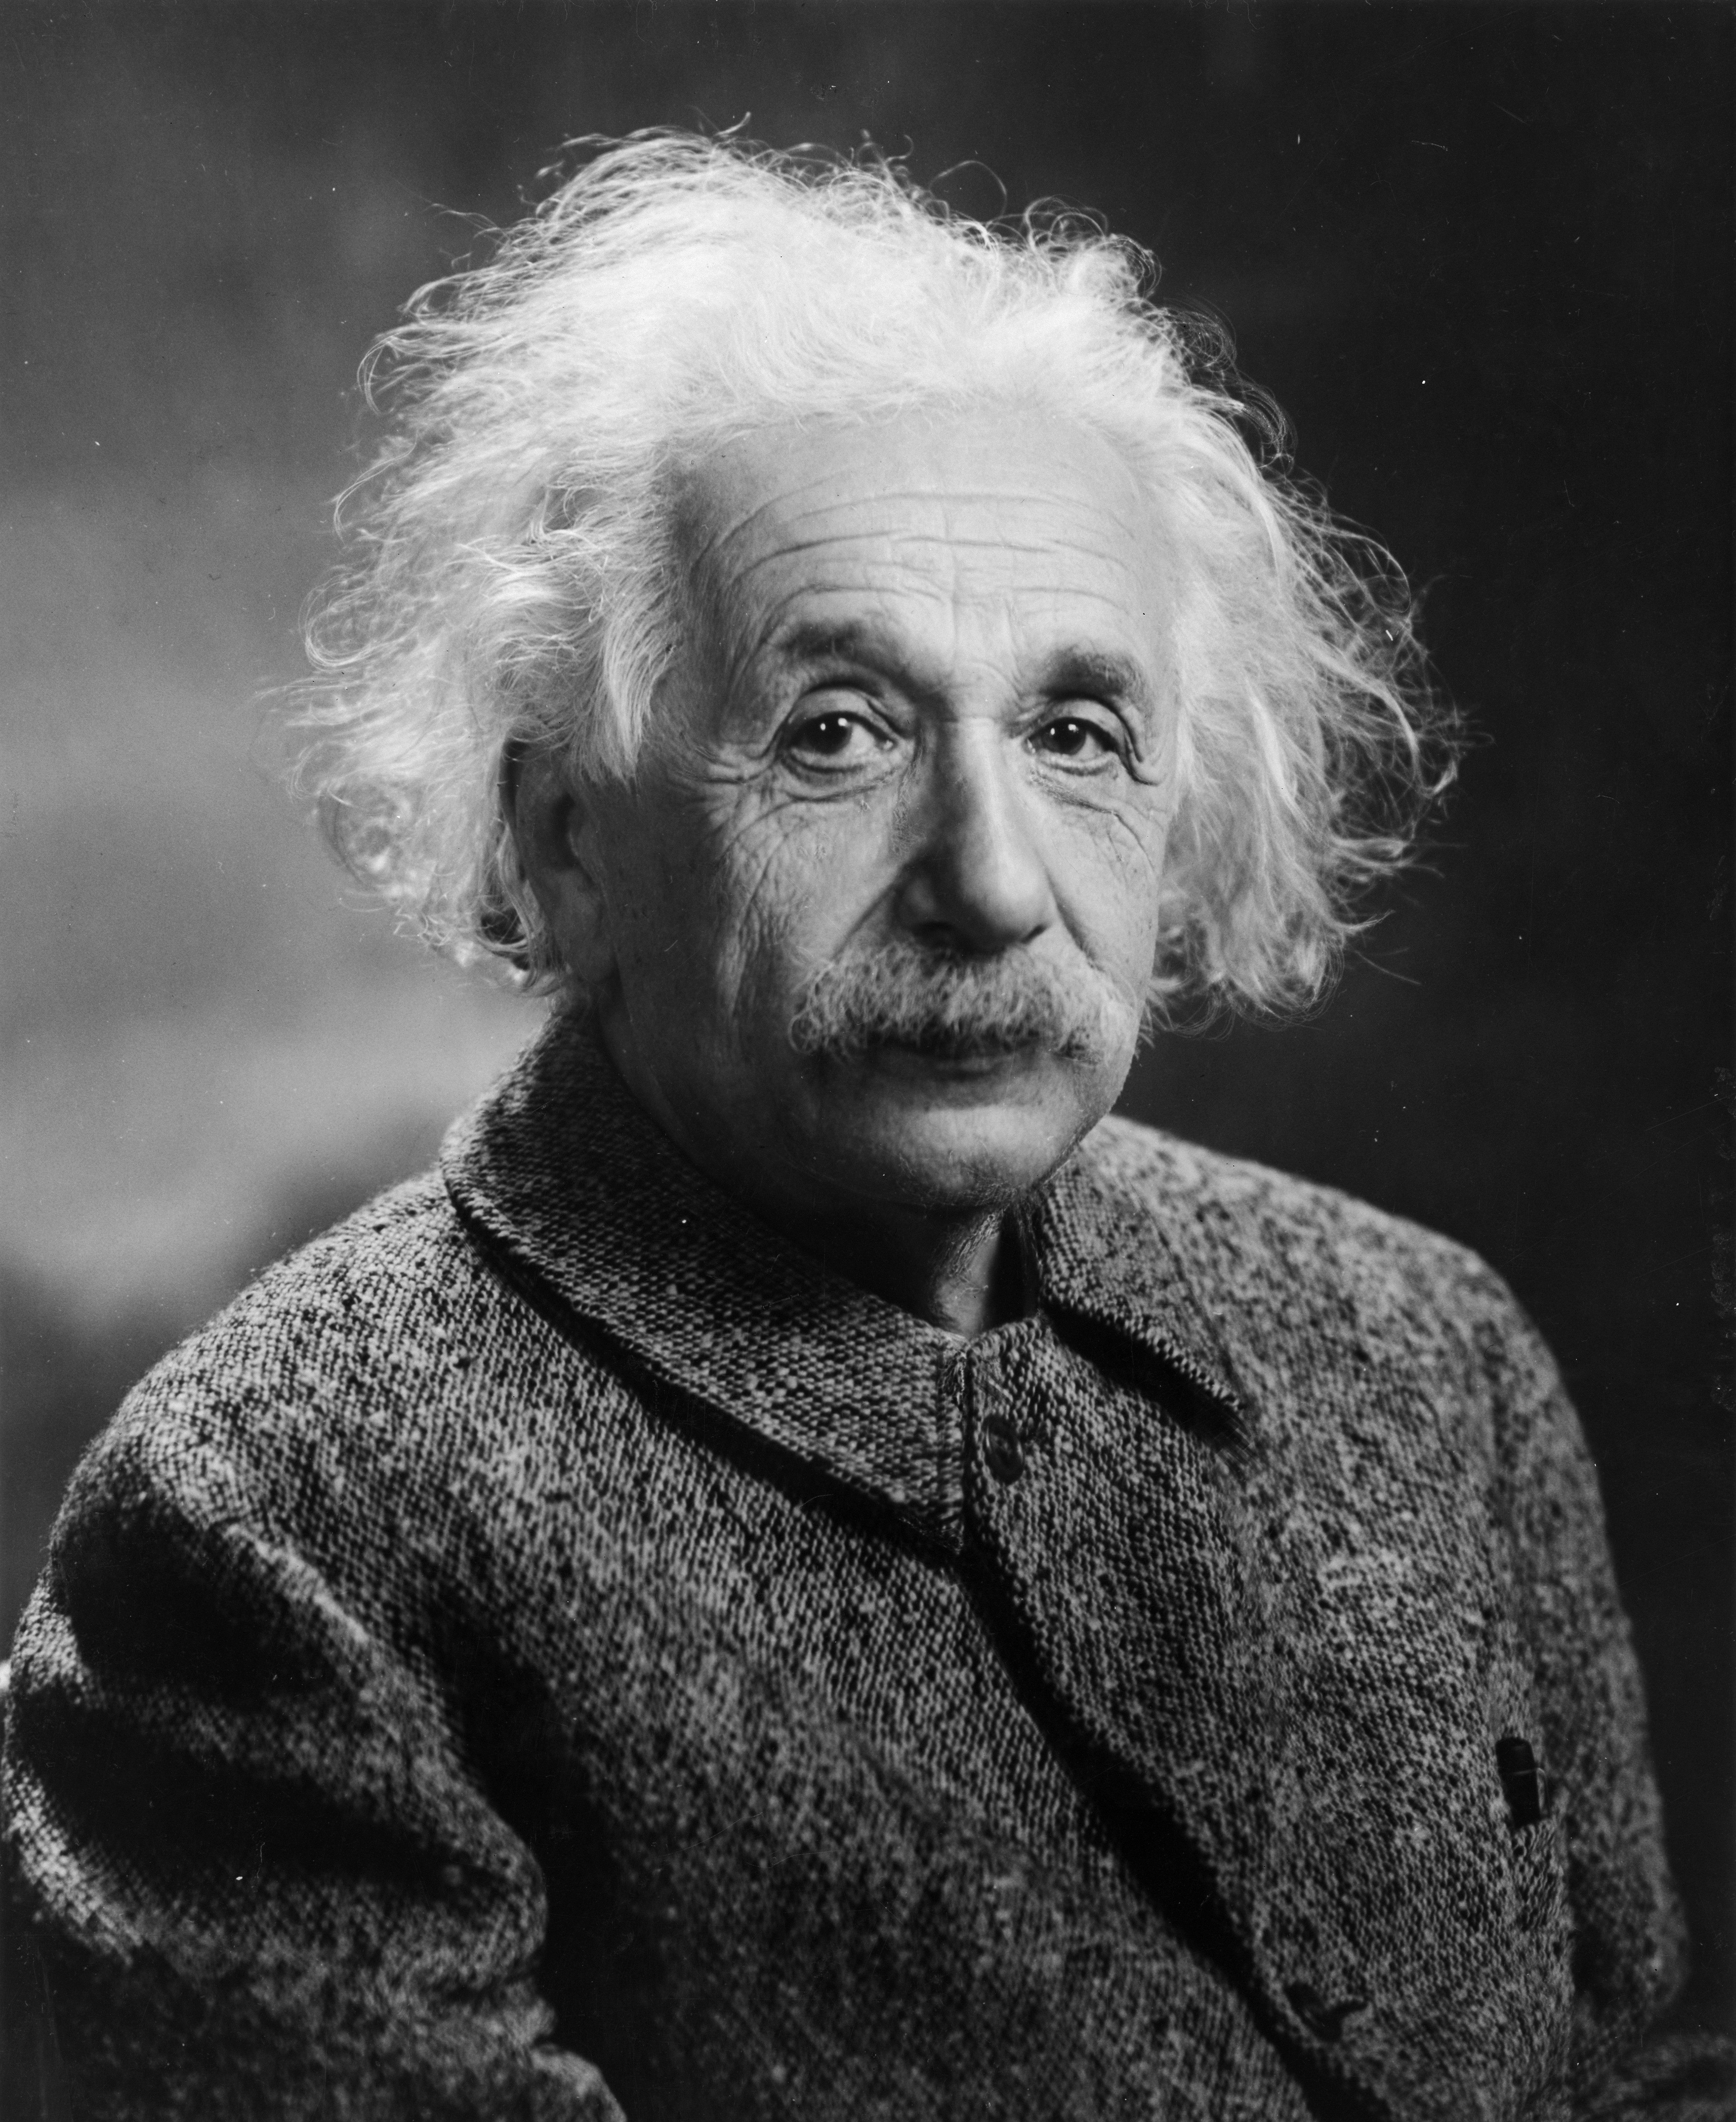 http://upload.wikimedia.org/wikipedia/commons/1/14/Albert_Einstein_1947.jpg